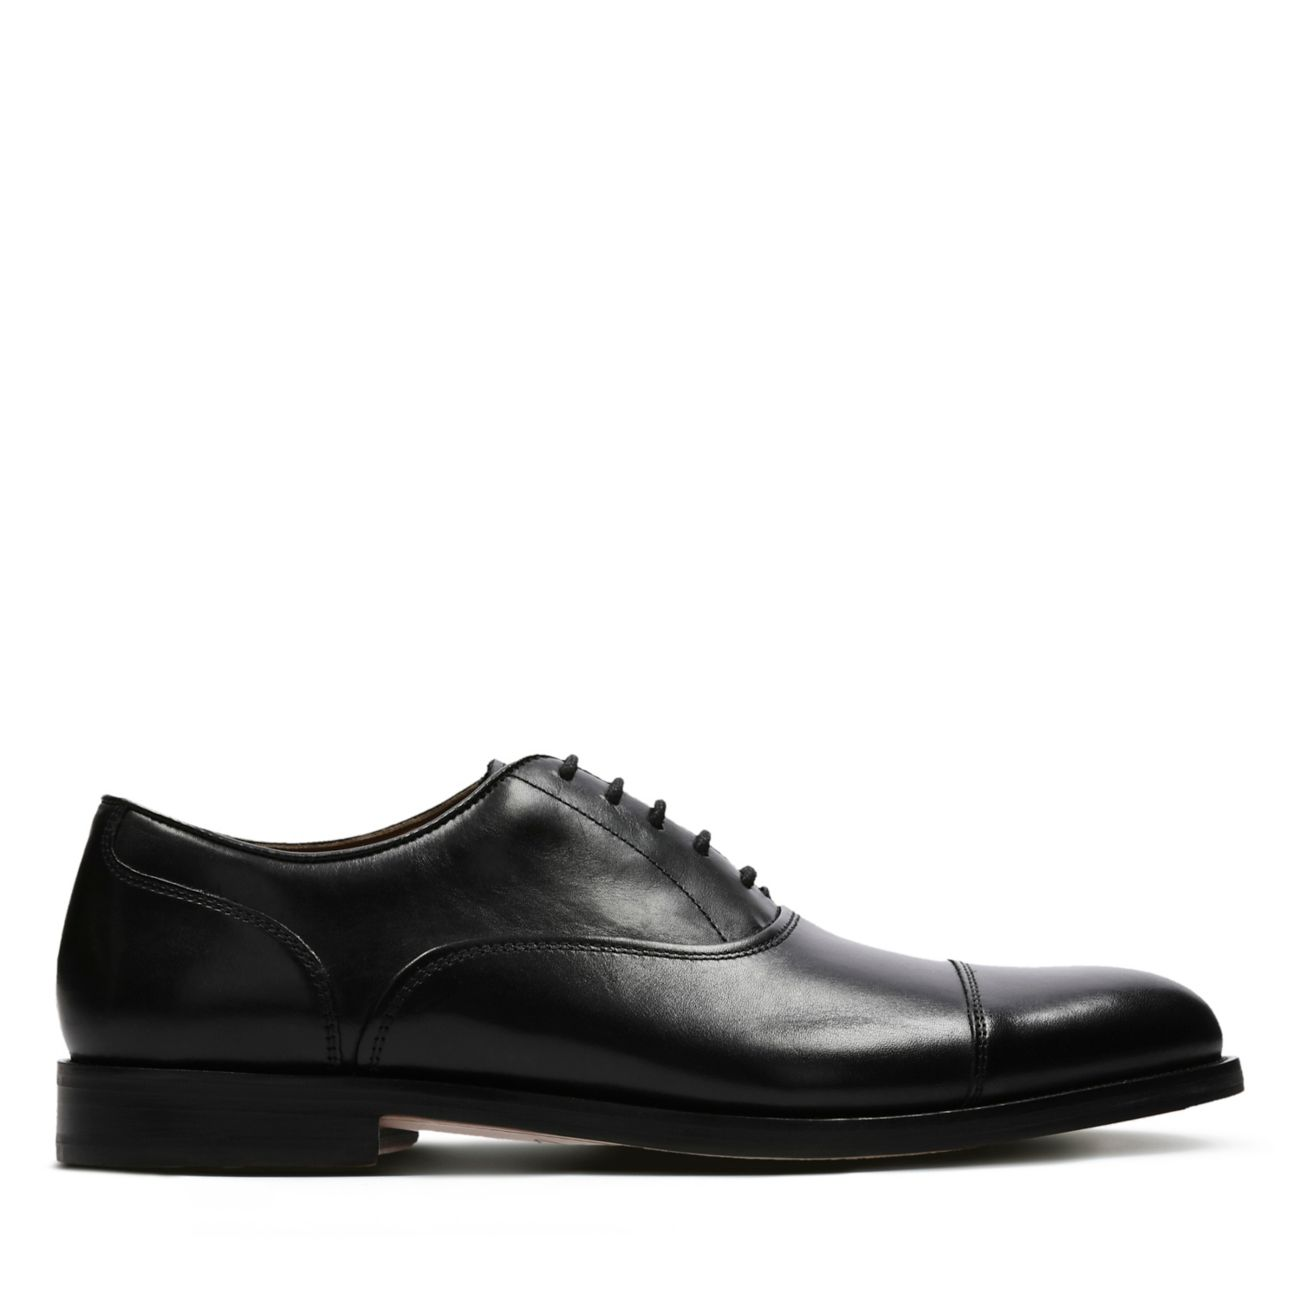 c5df9b5170175d Oxford shoes Coling Boss | Clarks